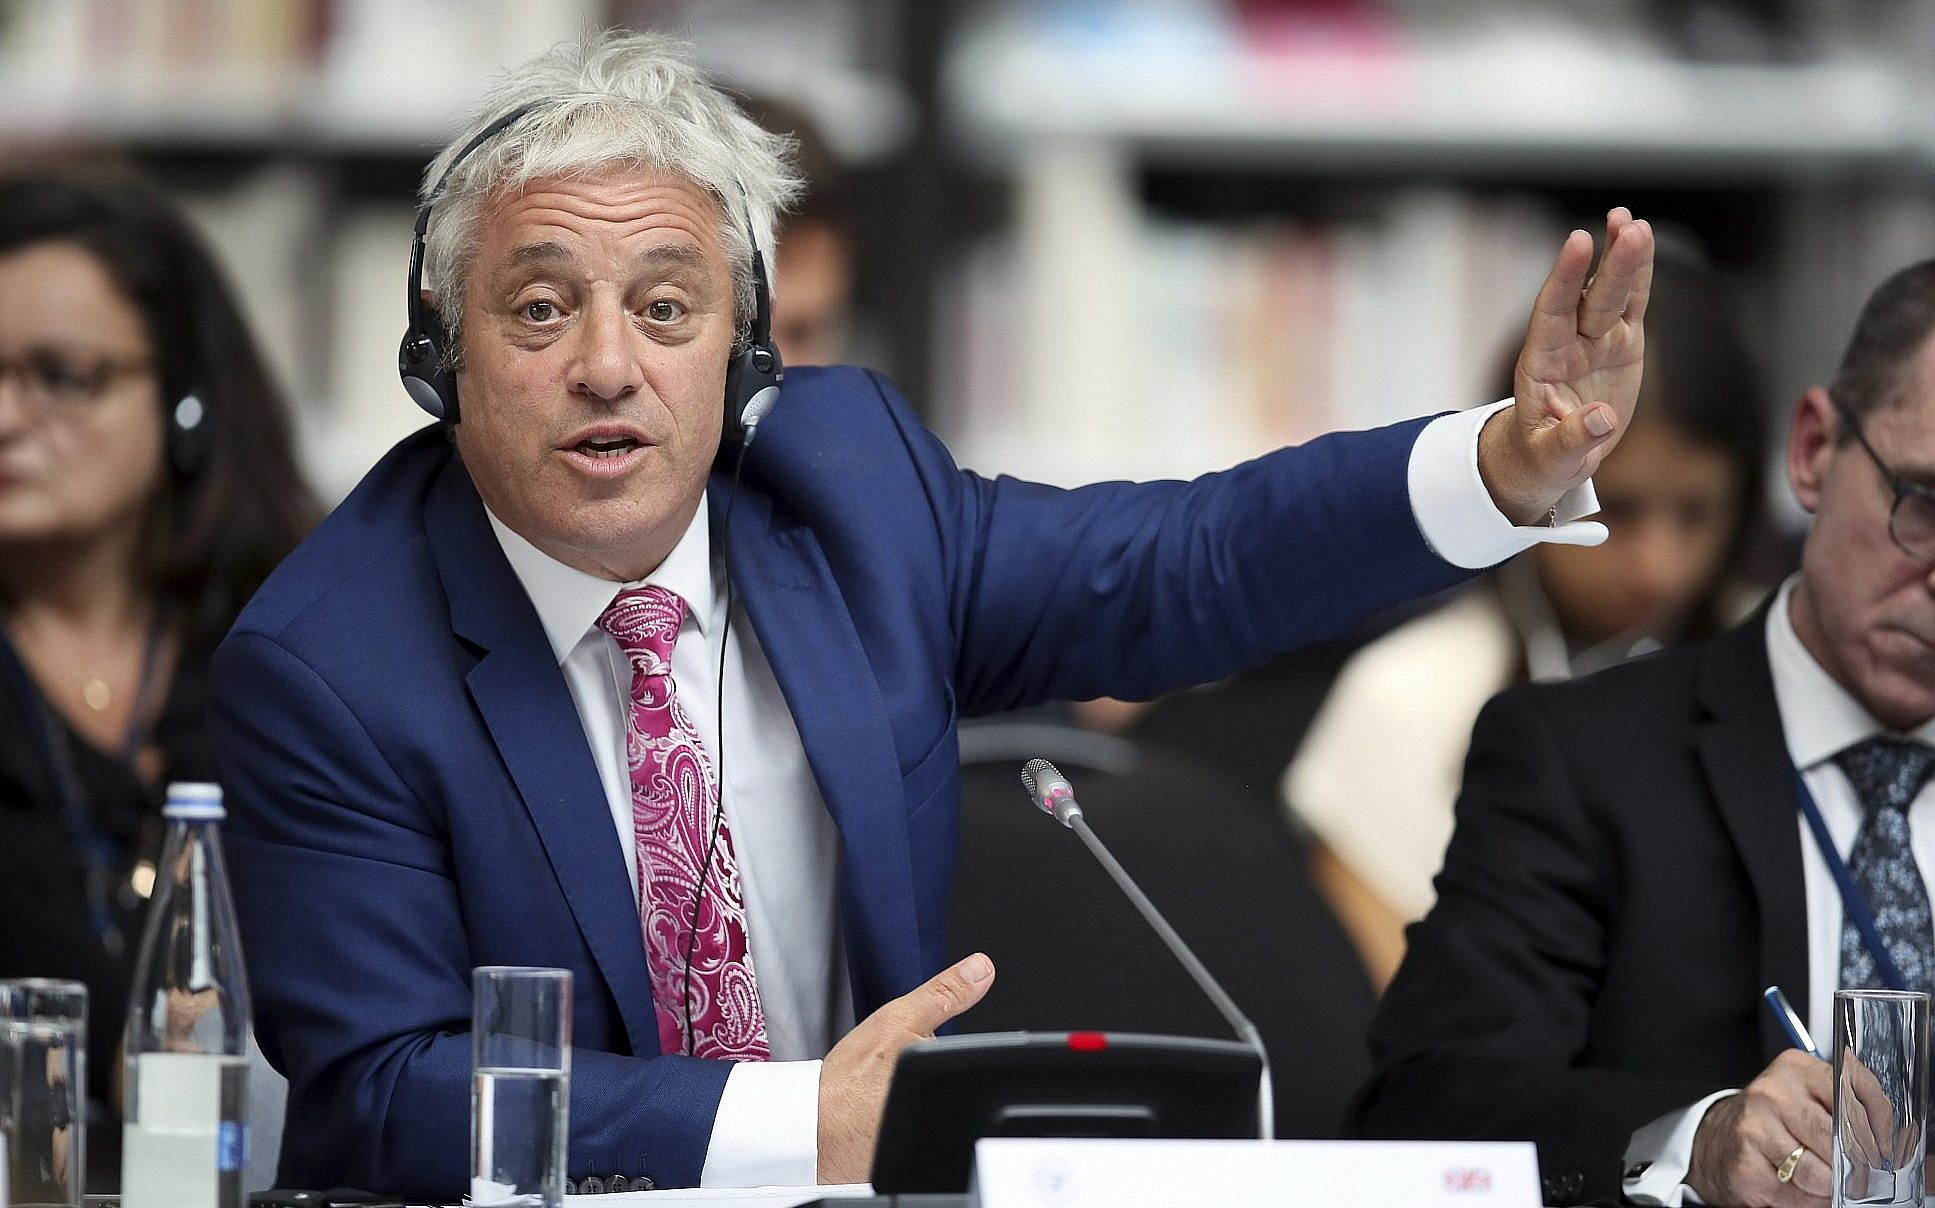 Speaker of the House of Commons John Bercow gestures during a meeting at the G7 parliaments summit in Brest western France